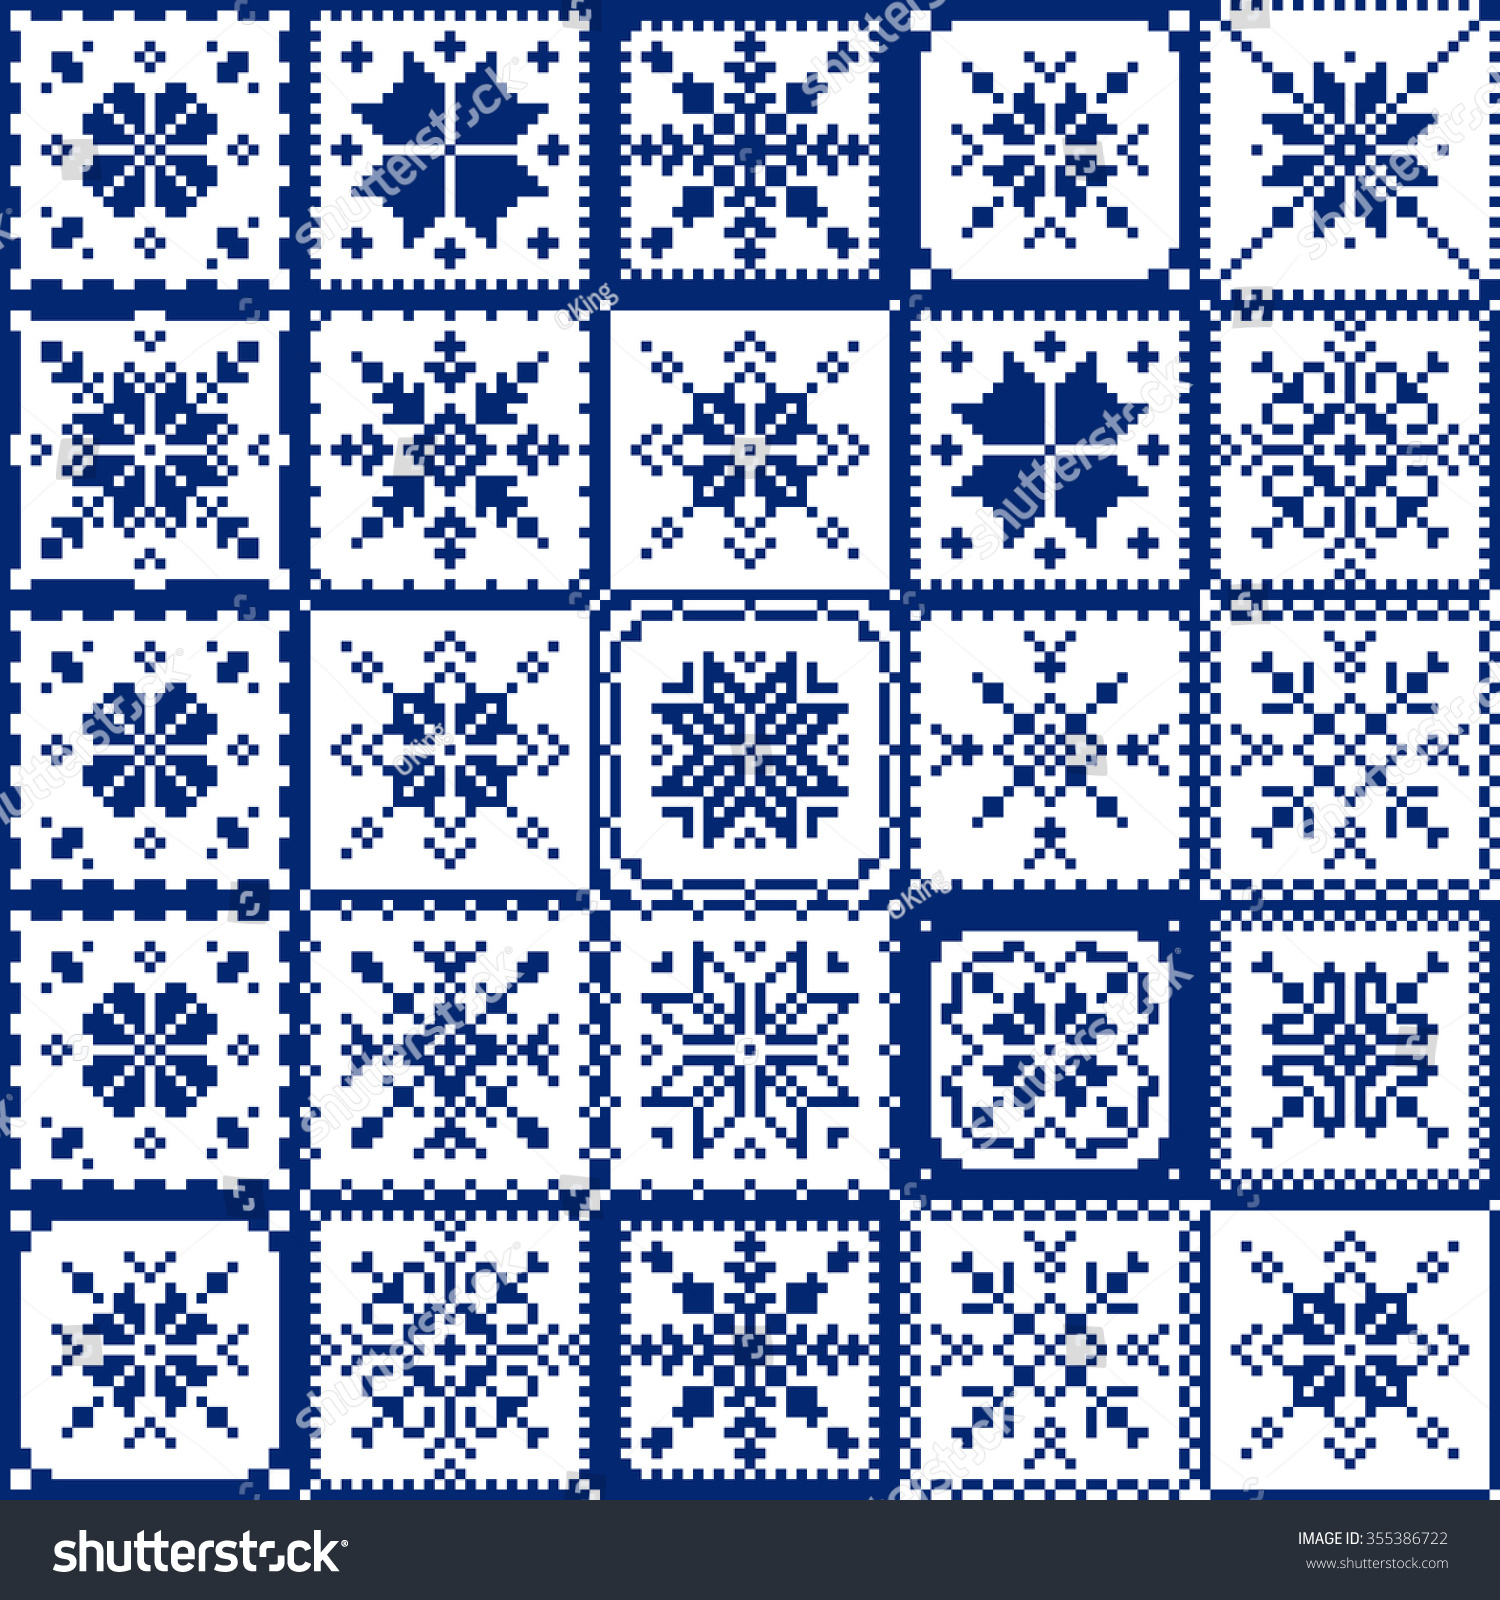 Knitting Patchwork Quilt Patterns : Set patchwork knitted new years snowflake stock vector